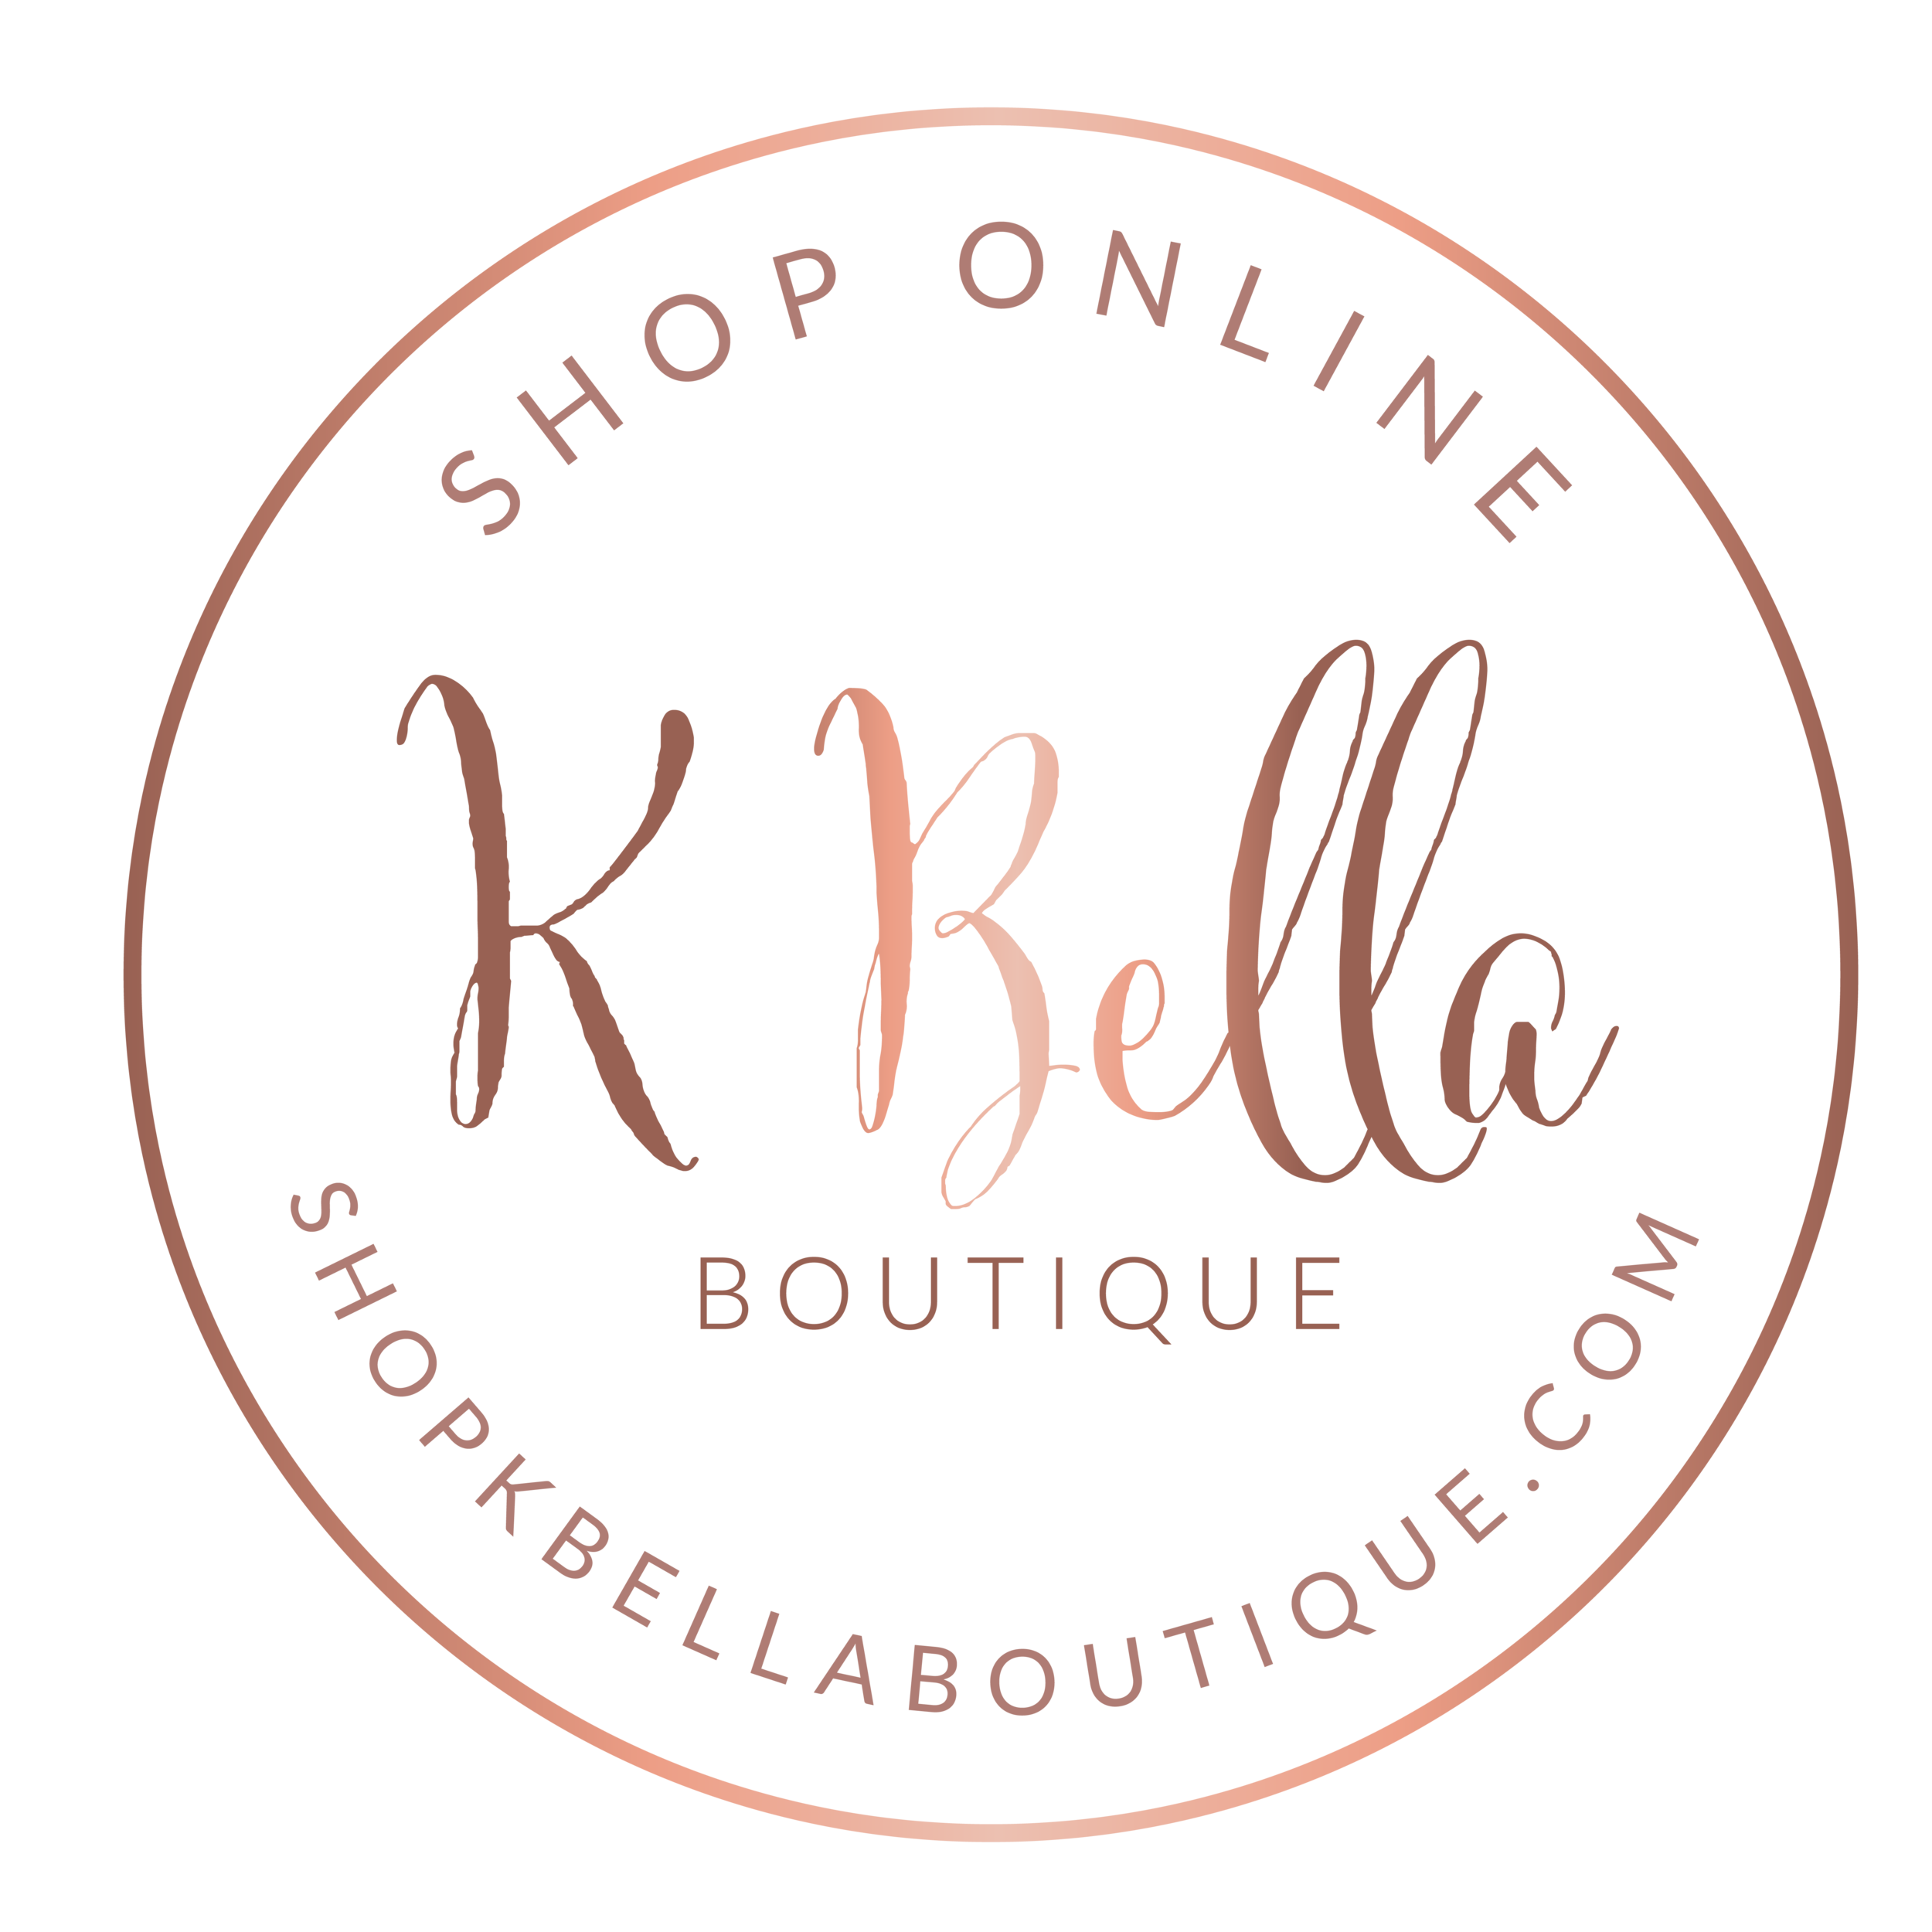 F R E E Photoshoot Styling - Every photoshoot with Snap Studio includes FREE clothing styling by K Bella Boutique.Karin will help you find a outfit that works best for your shape, and style then equip you with tips and tricks for on-going looks. You can even pick out an outfit staple from K Bella to wear for your photoshoot! Contact us to get the conversation going info@snapstudiomi.com